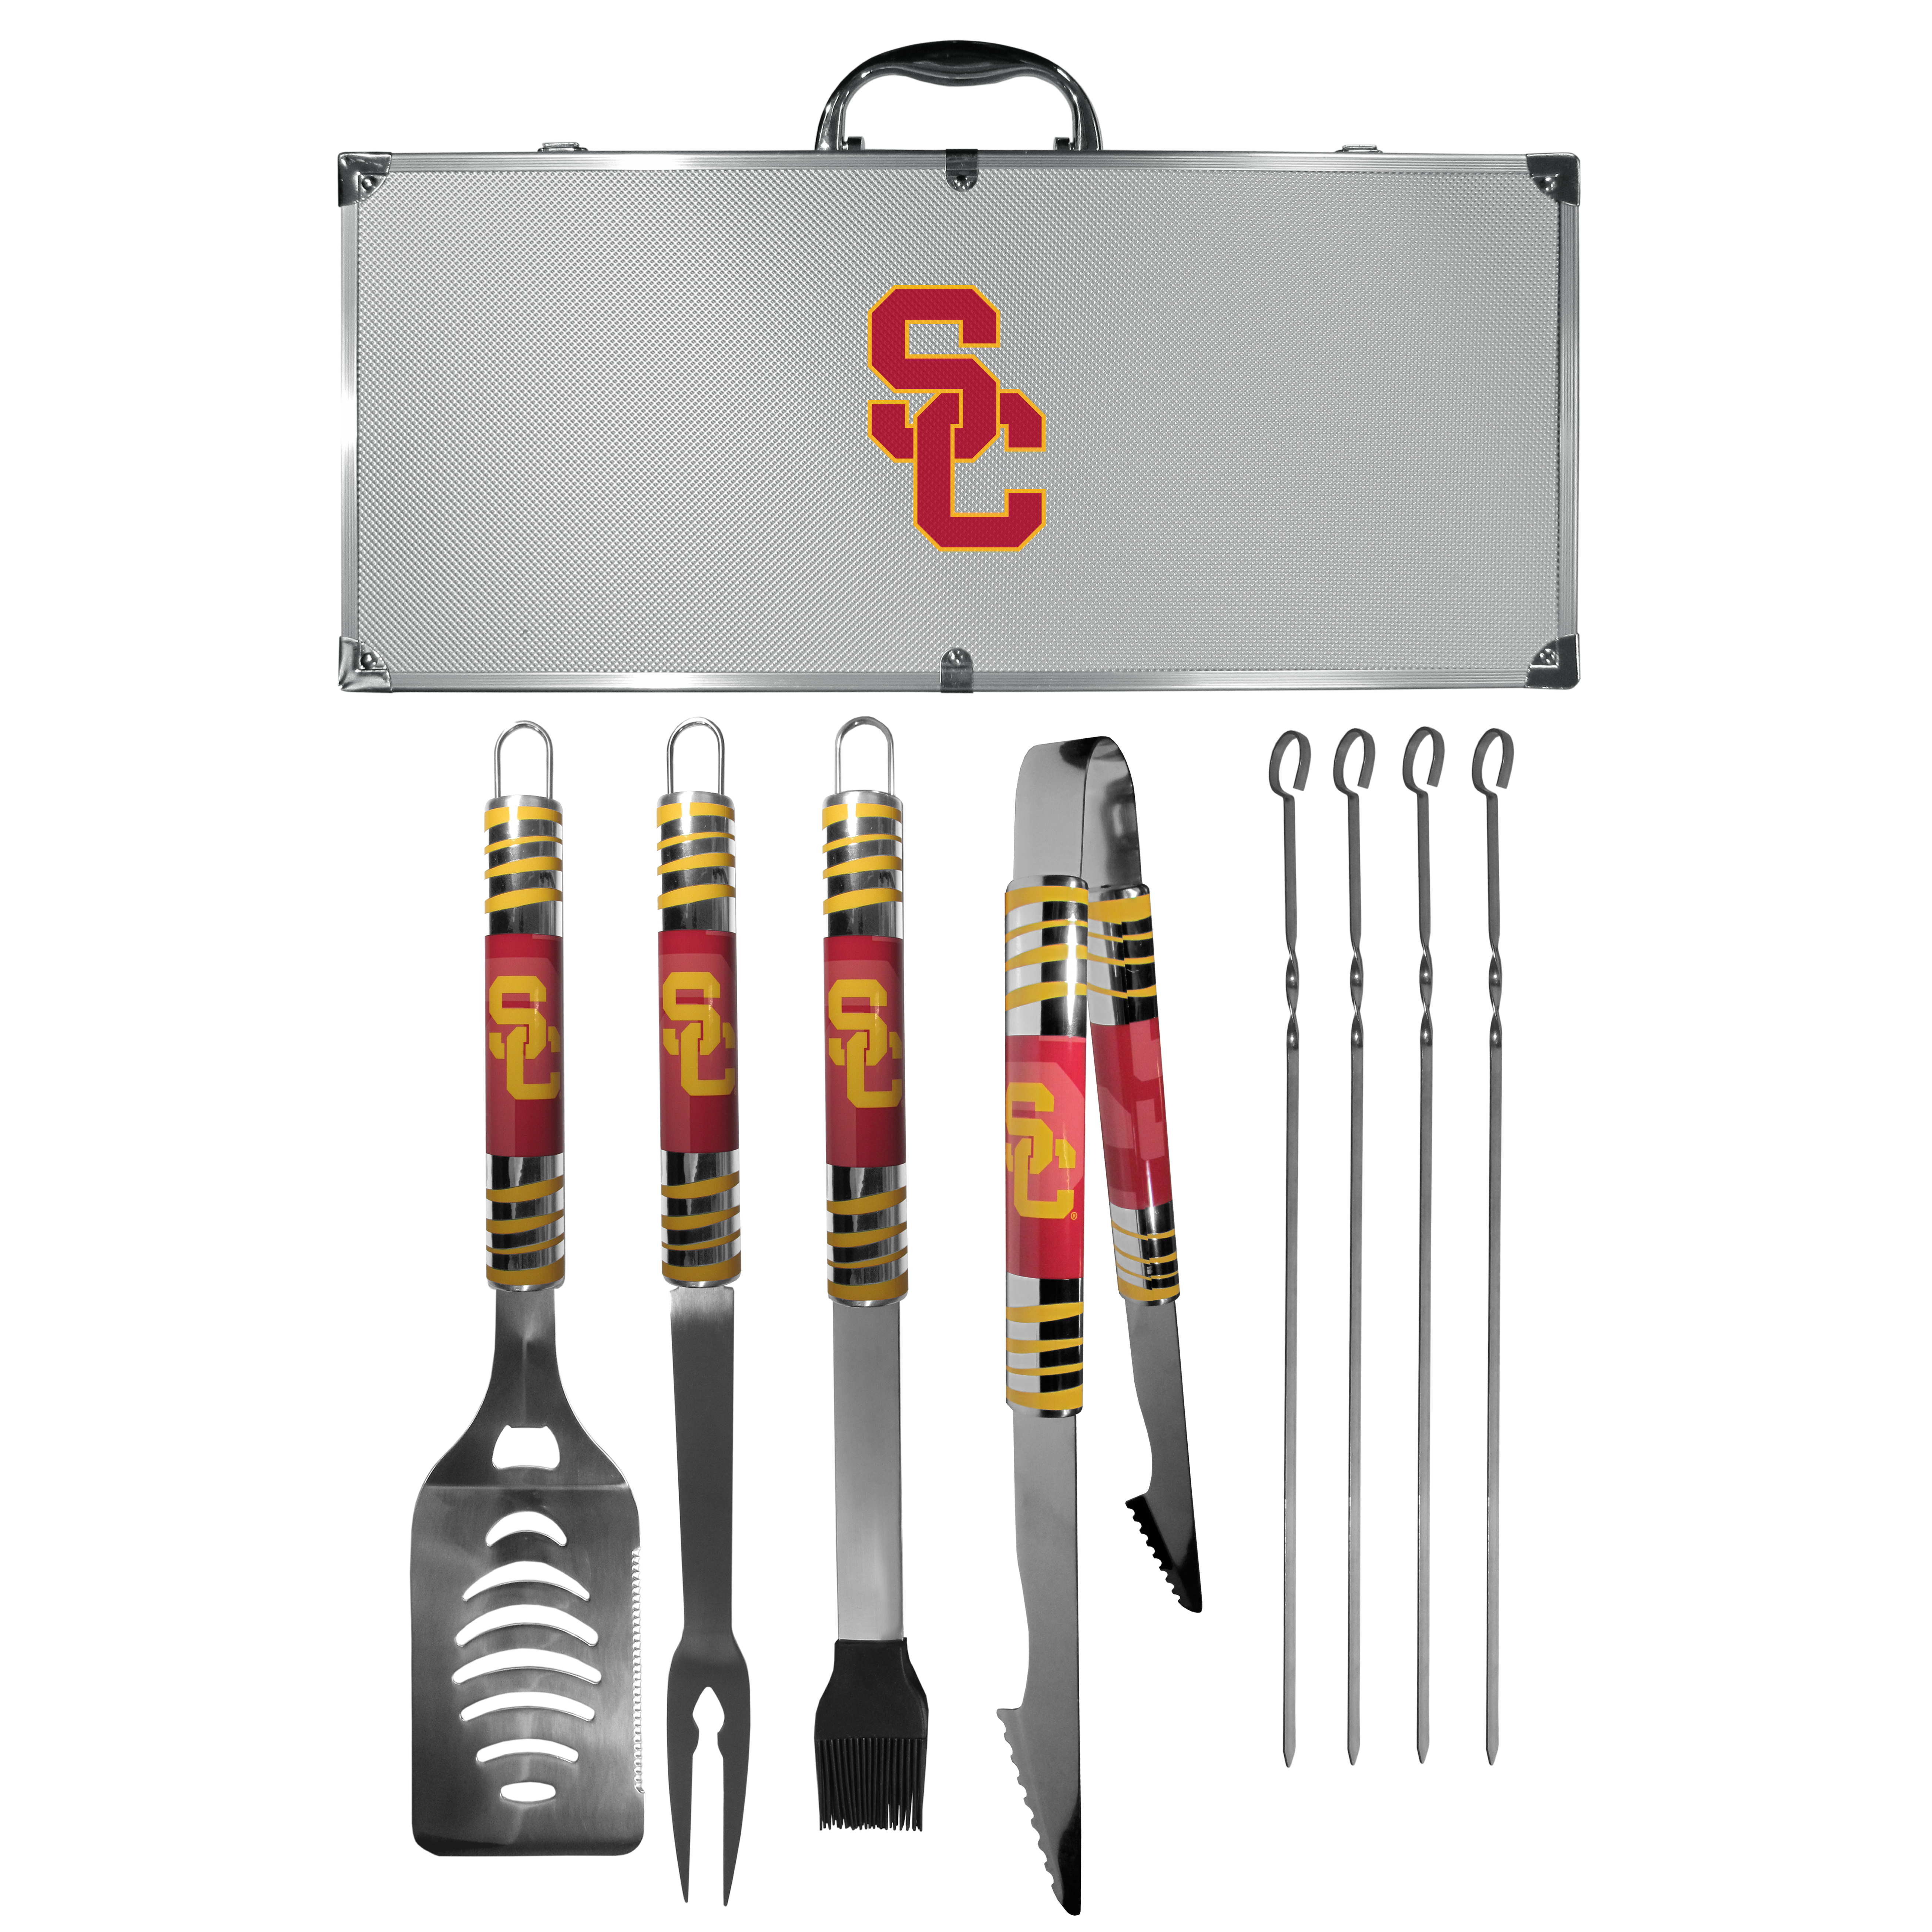 USC Trojans 8 pc Tailgater BBQ Set - This is the ultimate USC Trojans tailgate accessory! The high quality, 420 grade stainless steel tools are durable and well-made enough to make even the pickiest grill master smile. This complete grill accessory kit includes; 4 skewers, spatula with bottle opener and serrated knife edge, basting brush, tongs and a fork. The 18 inch metal carrying case is perfect for great outdoor use making grilling an ease while camping, tailgating or while having a game day party on your patio. The tools are 17 inches long and feature vivid team graphics. The metal case features a large team emblem with exceptional detail. This high-end men's gift is sure to be a hit as a present on Father's Day or Christmas.